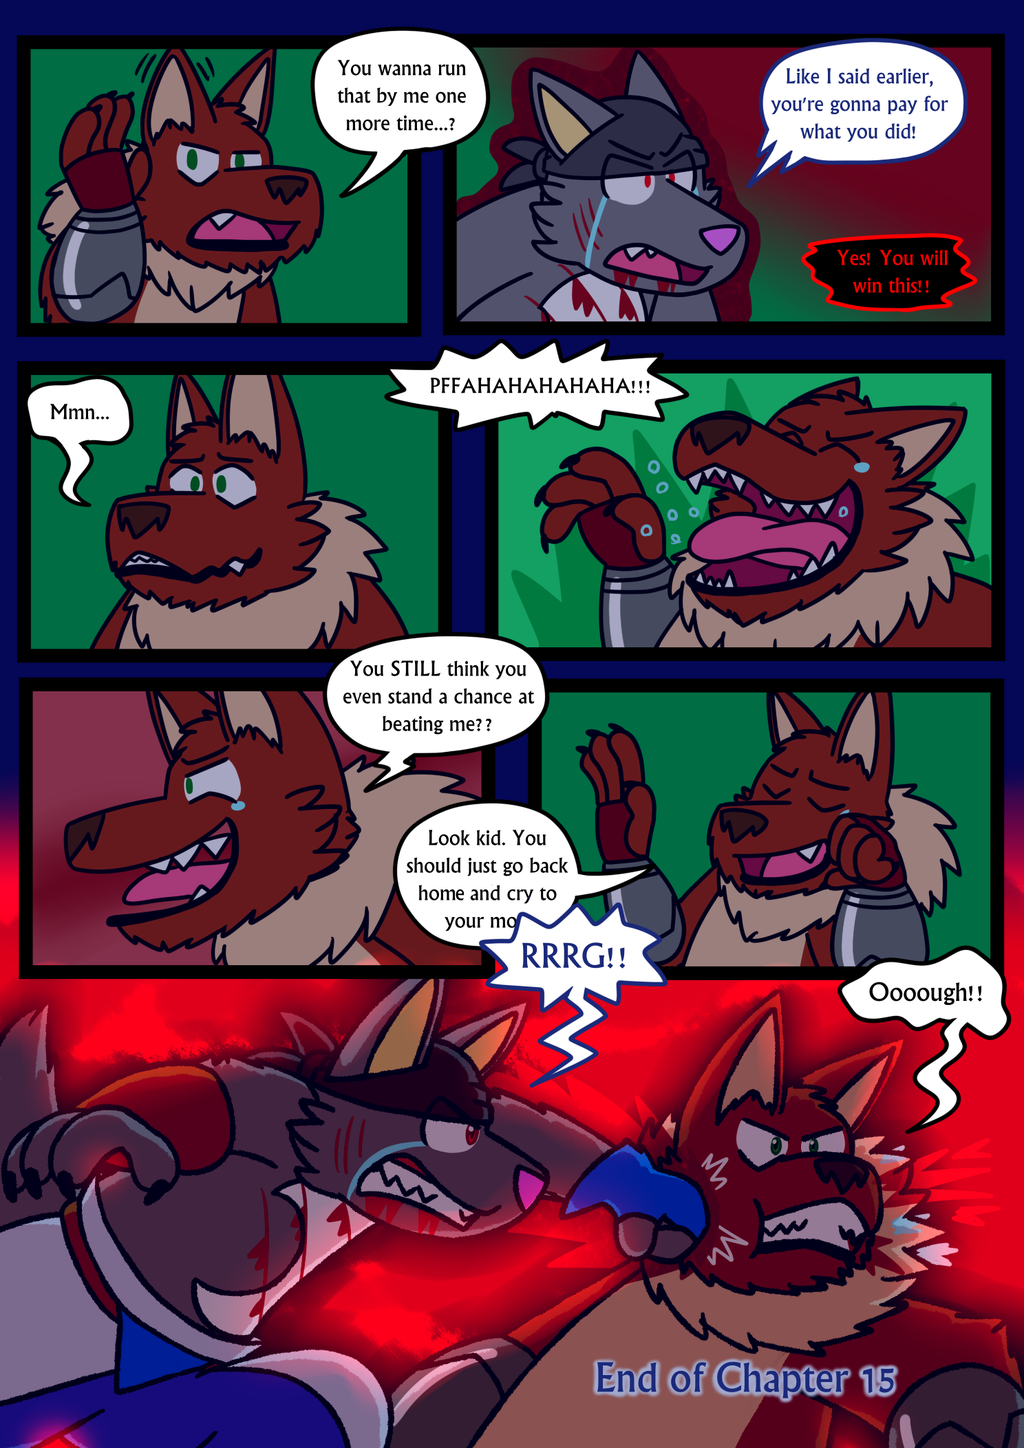 Lubo Chapter 15 Page 27 (Last)